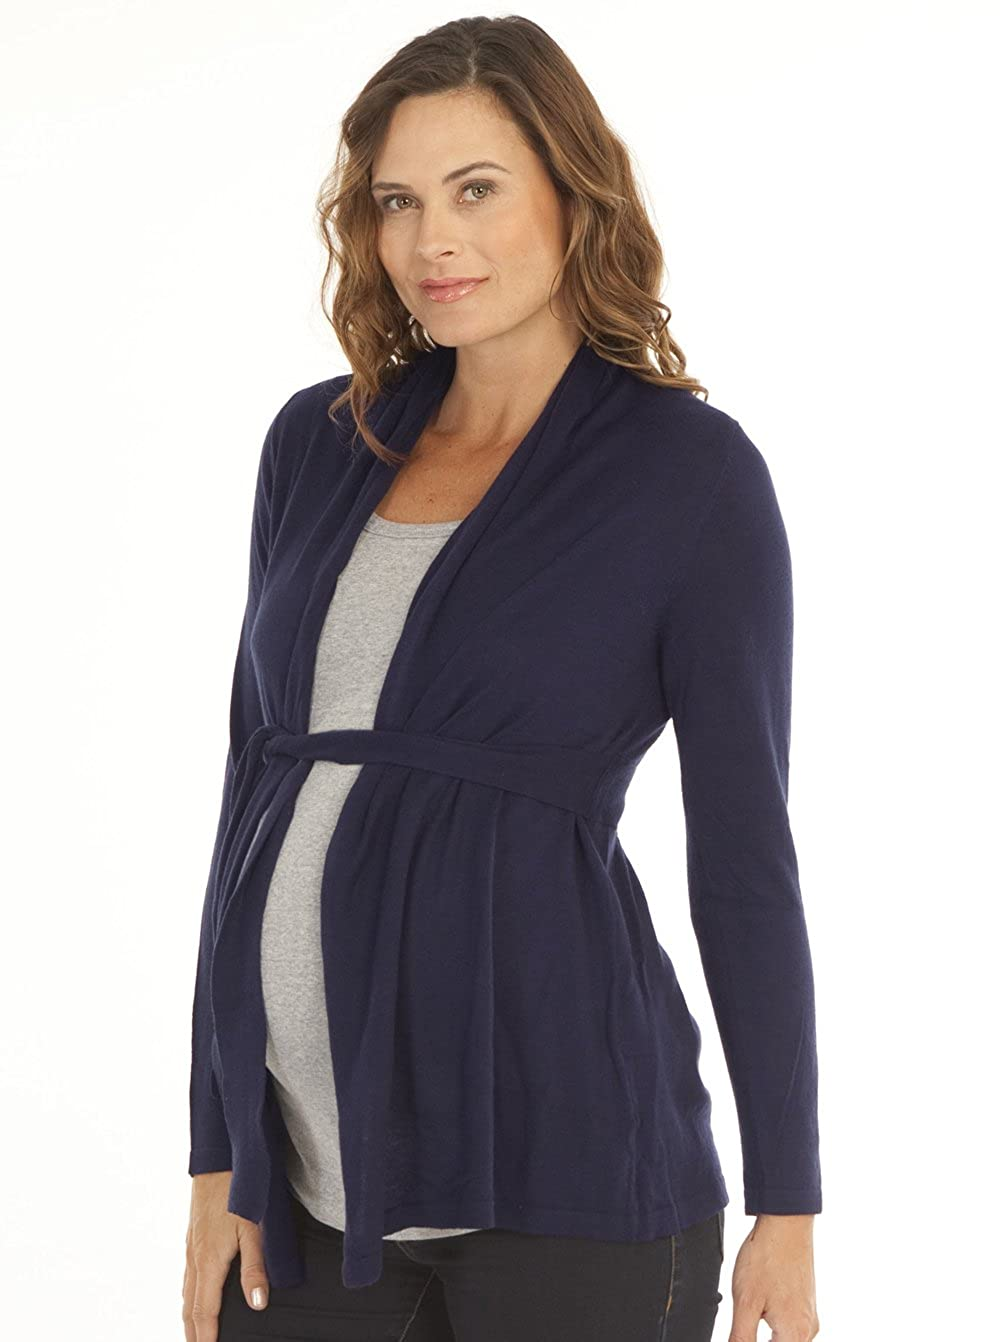 7f8250d92842a Angel Maternity - Roll Collar Cardigan with Waist Tie - The Perfect  Breastfeeding Cover at Amazon Women's Clothing store: